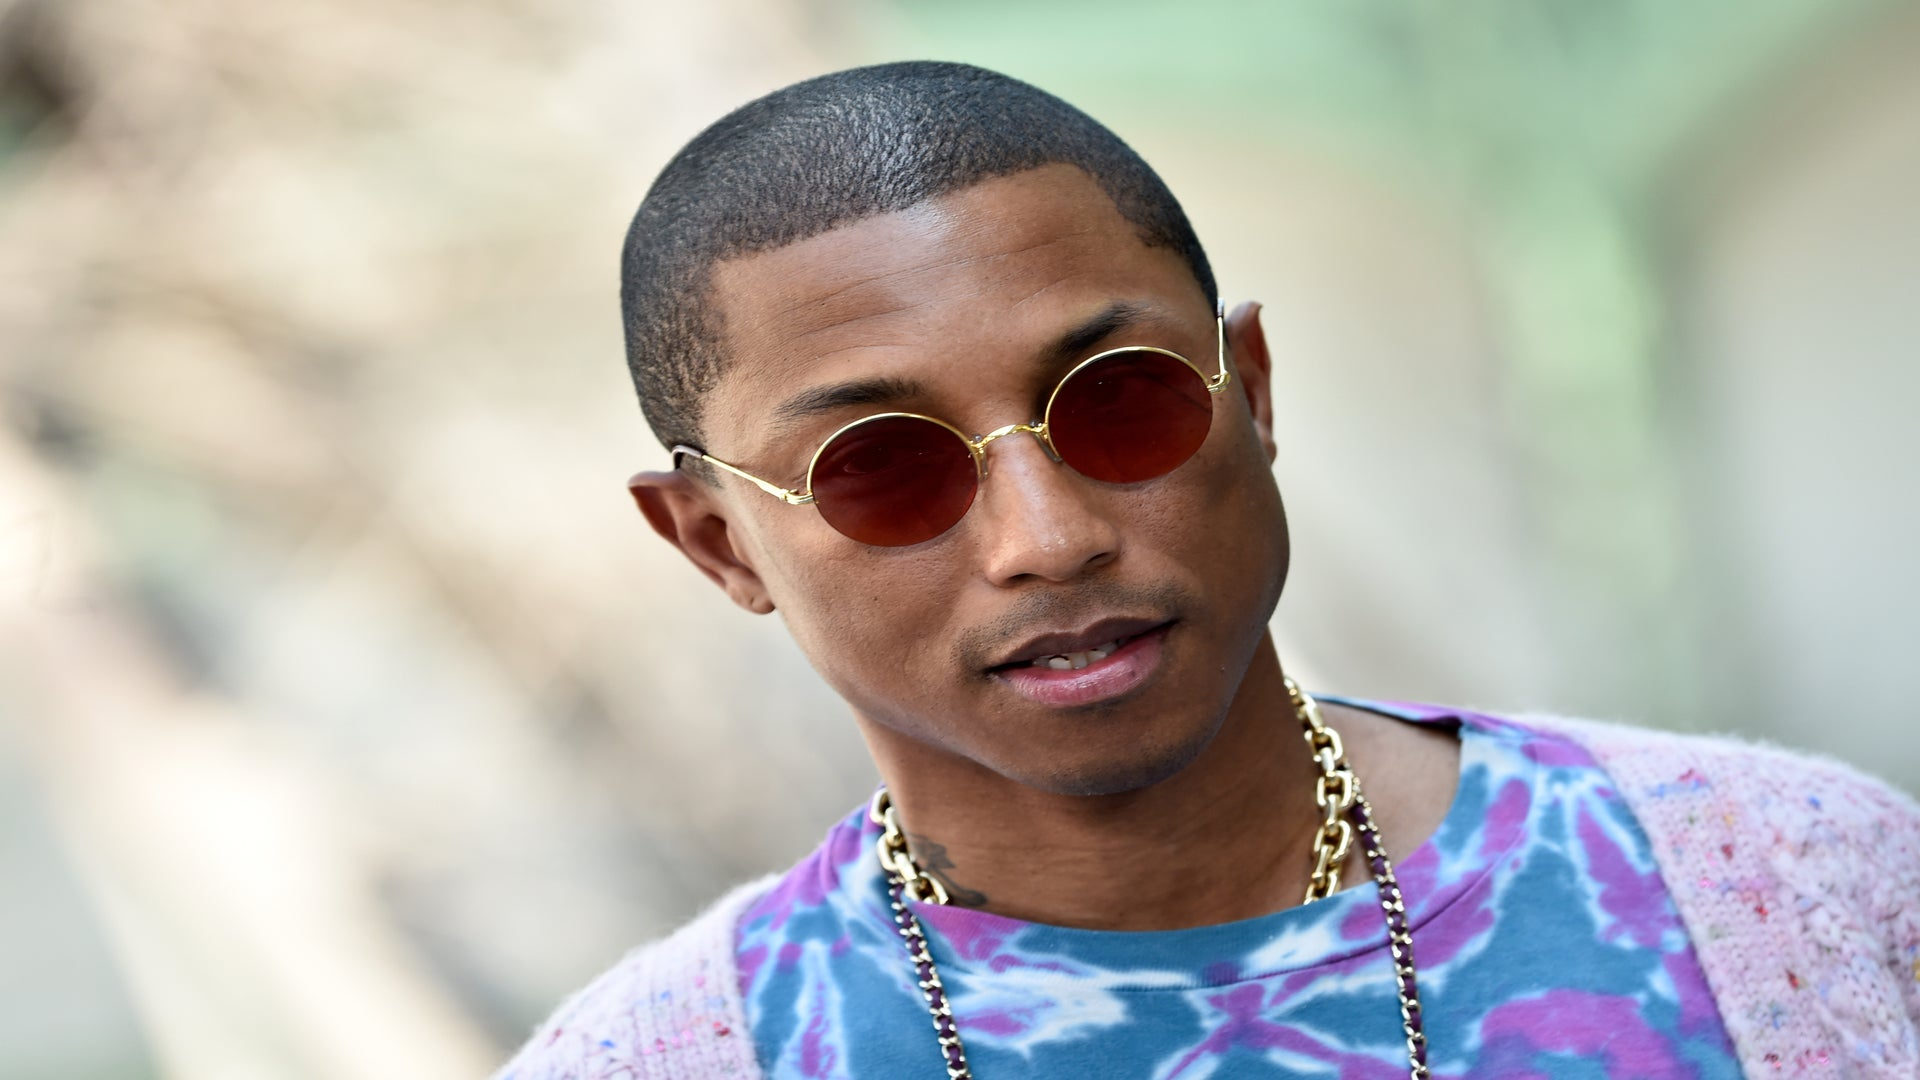 Pharrell Williams Teams Up With Adidas On Tennis-Inspired Collection